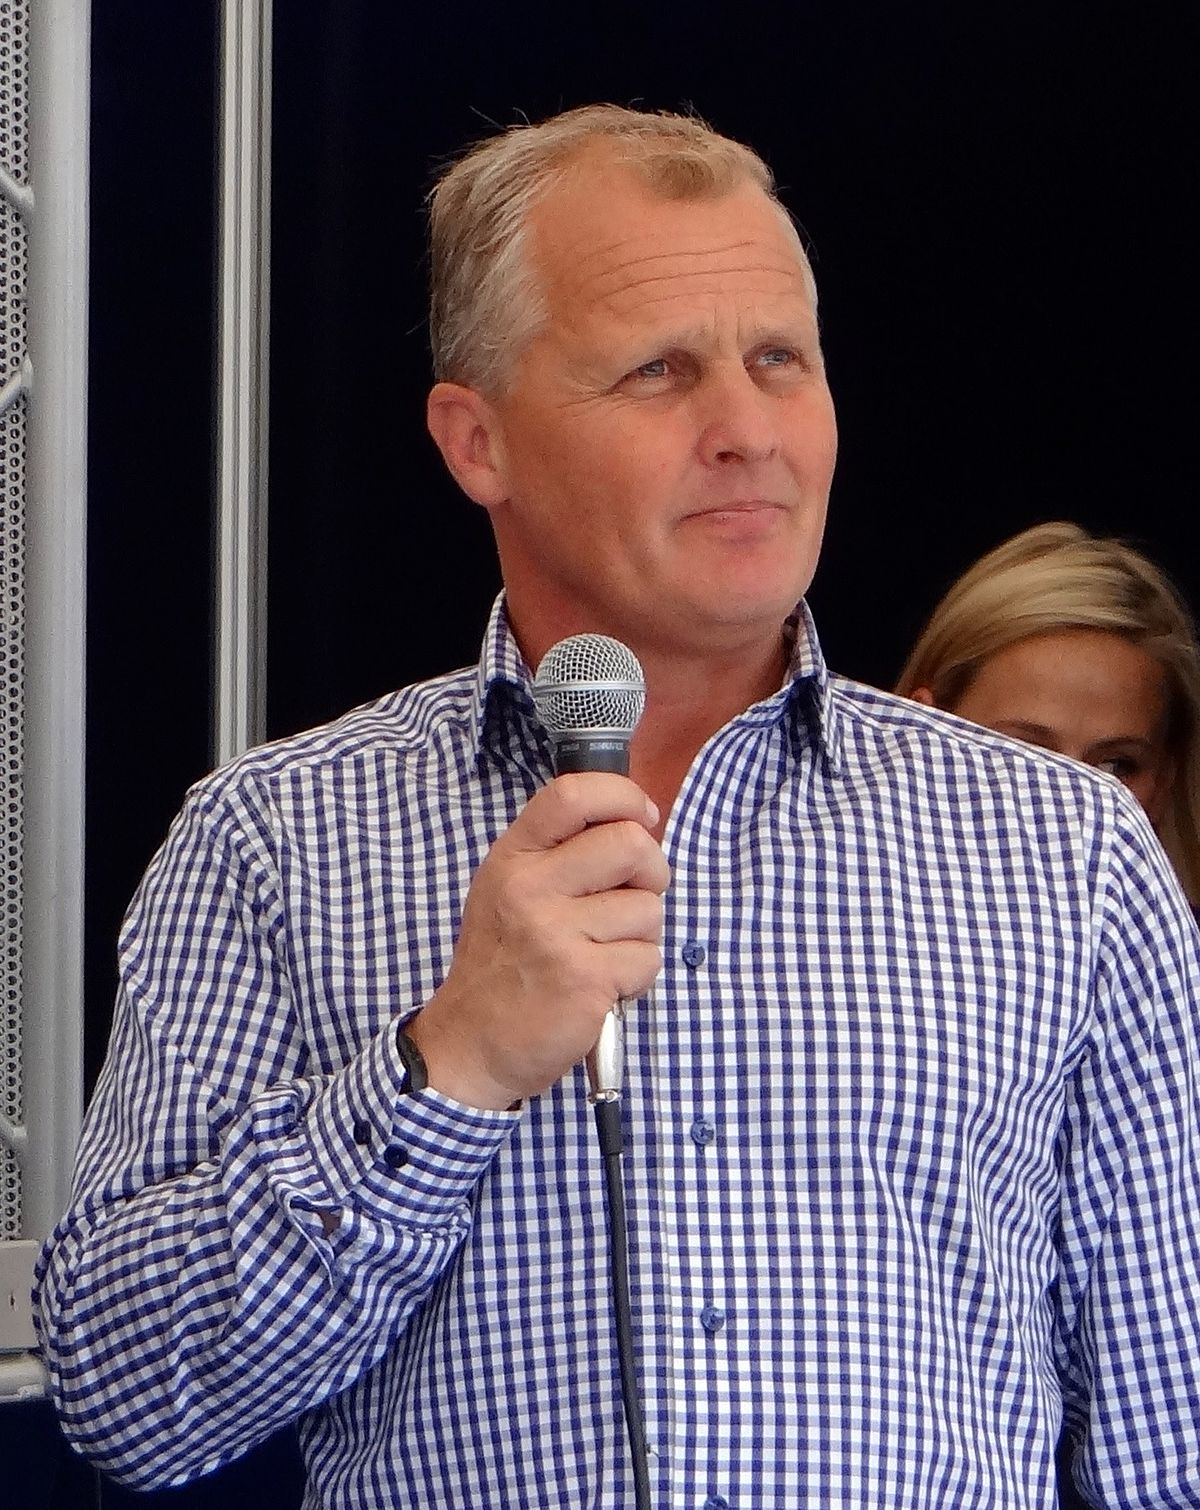 Johnny Herbert Wikipedia